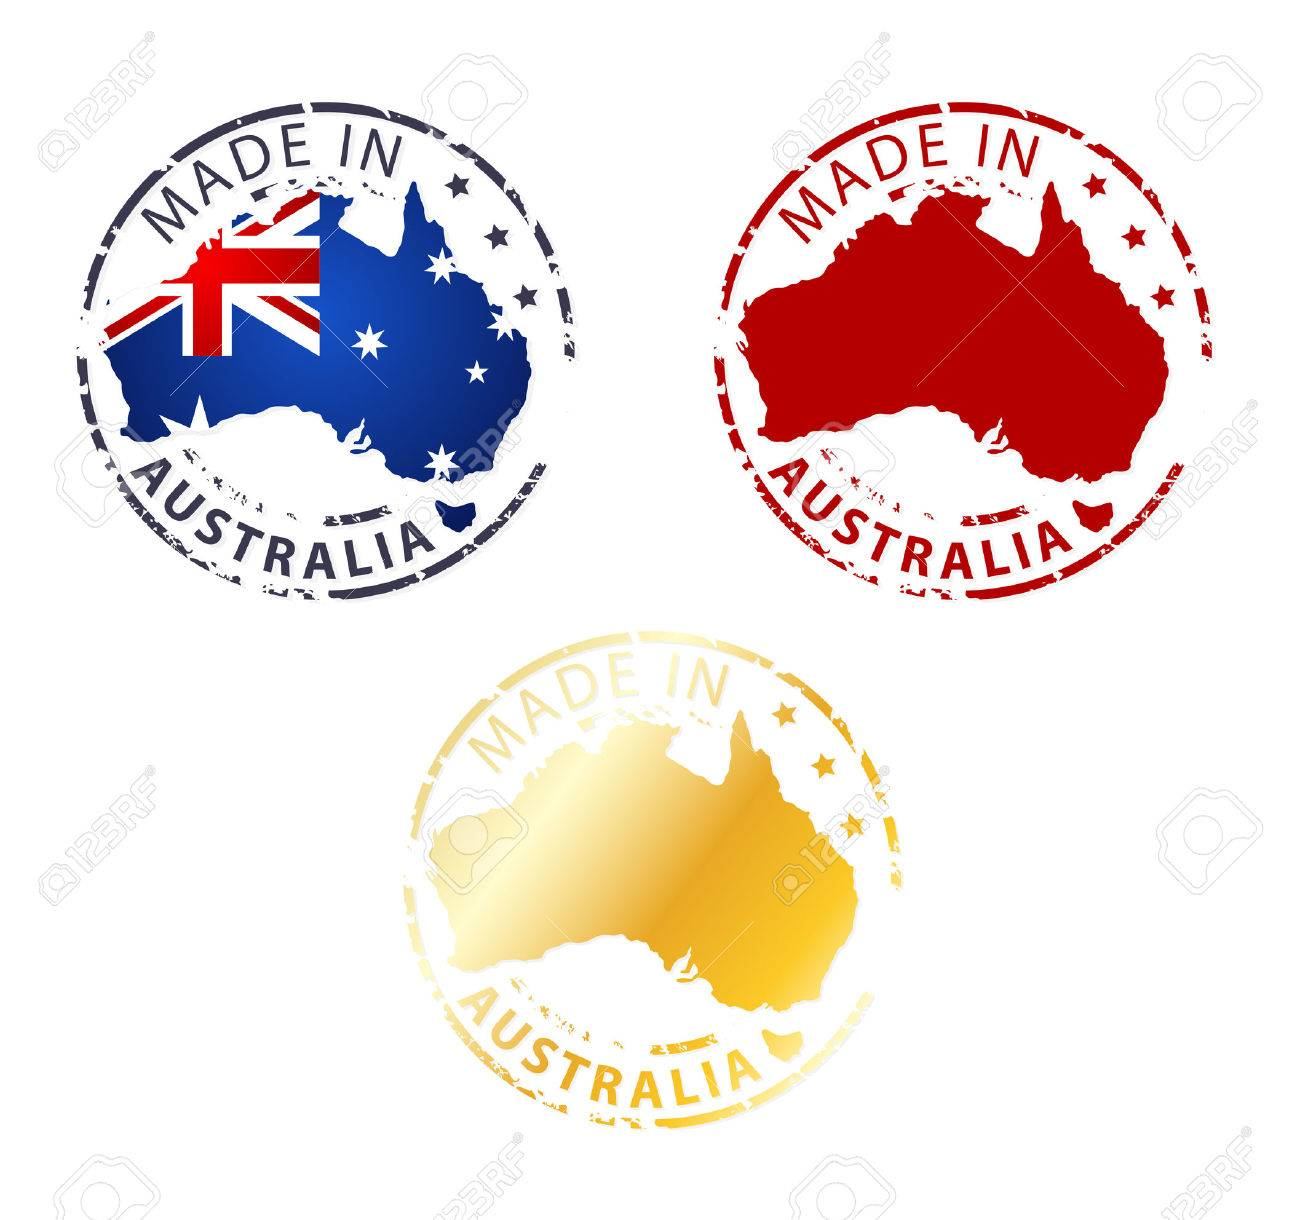 made in Australia stamp - ground authentic stamp with country map - 35636957